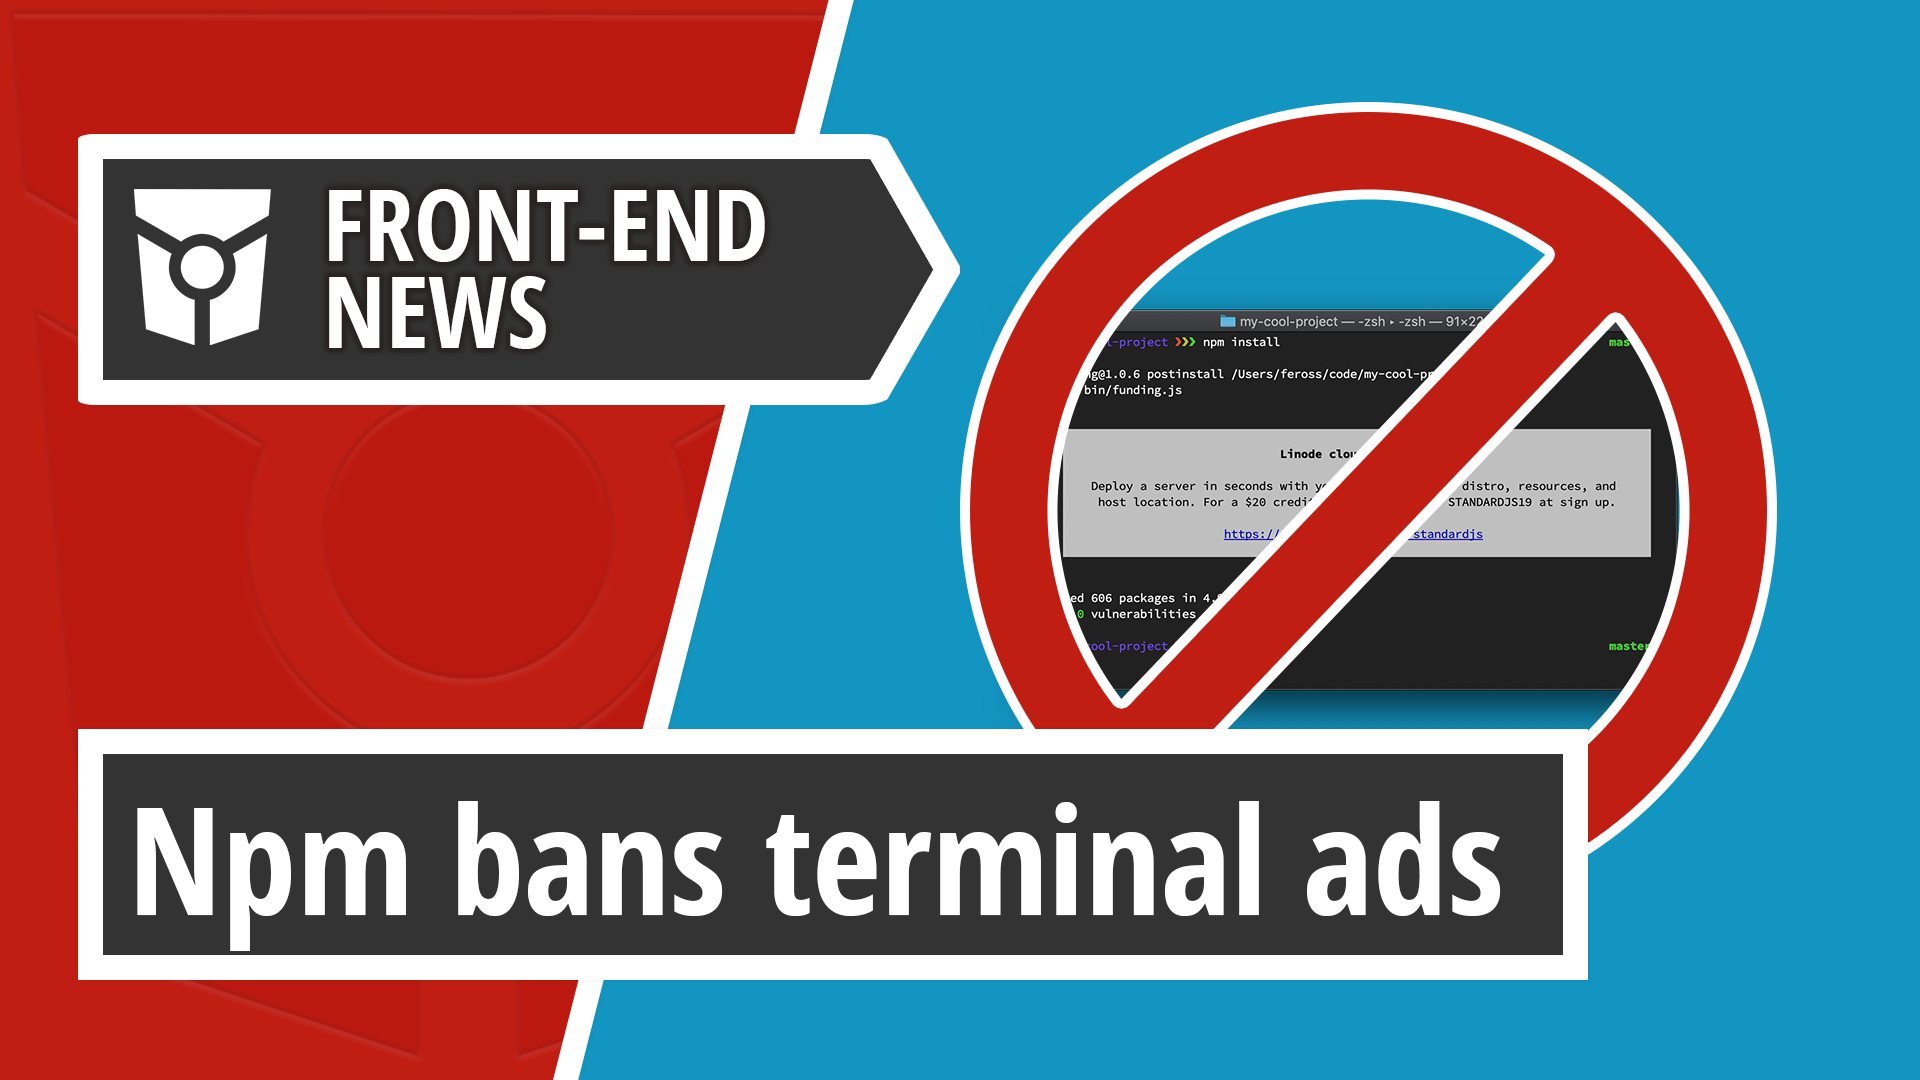 Npm bans terminal ads and Mozilla CEO will step down at the